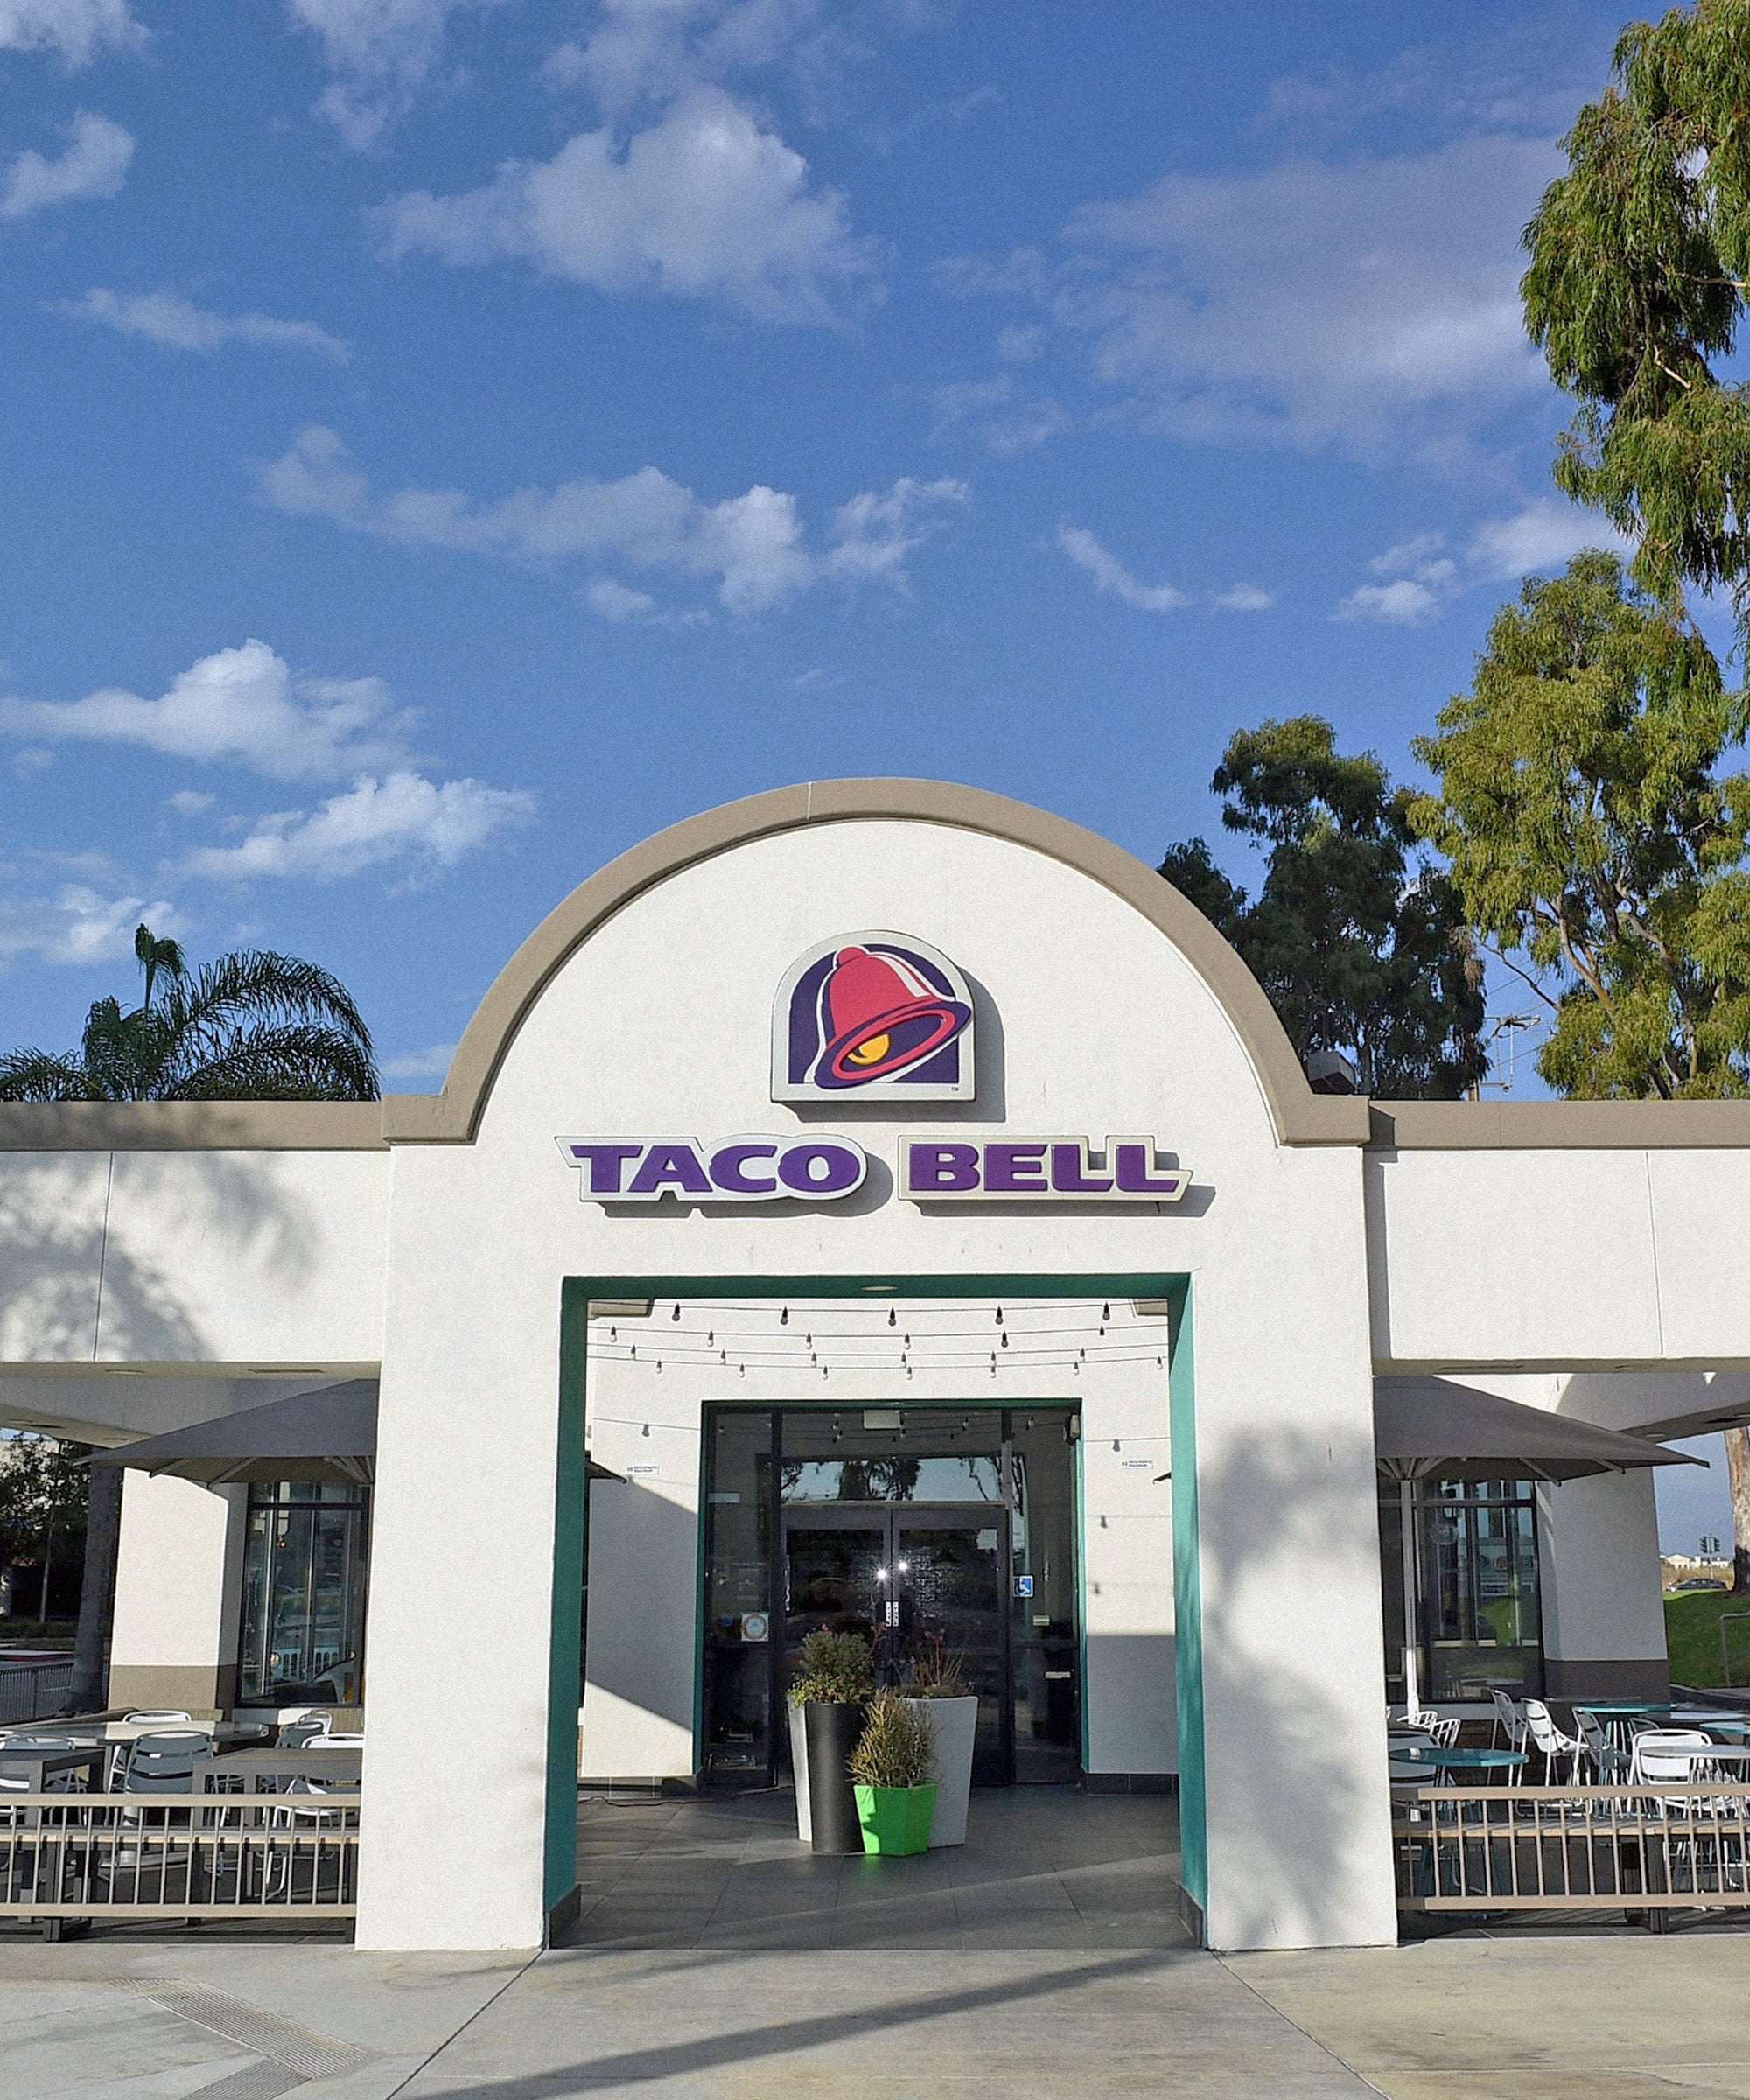 You Can Now Make $100K Working At Taco Bell. This Is Not A Drill.